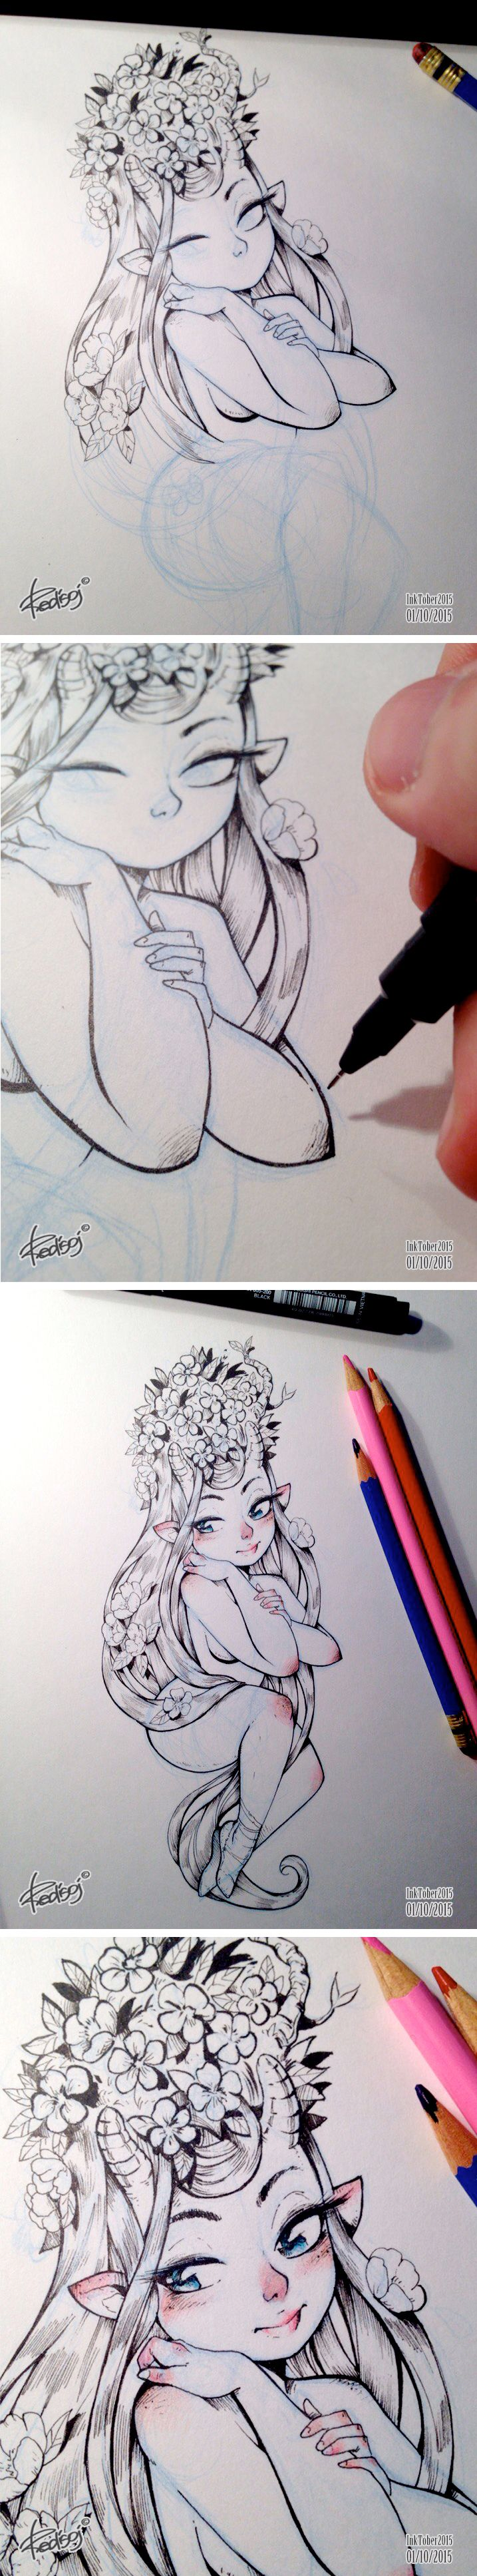 best images about drawingart on pinterest watercolors chibi